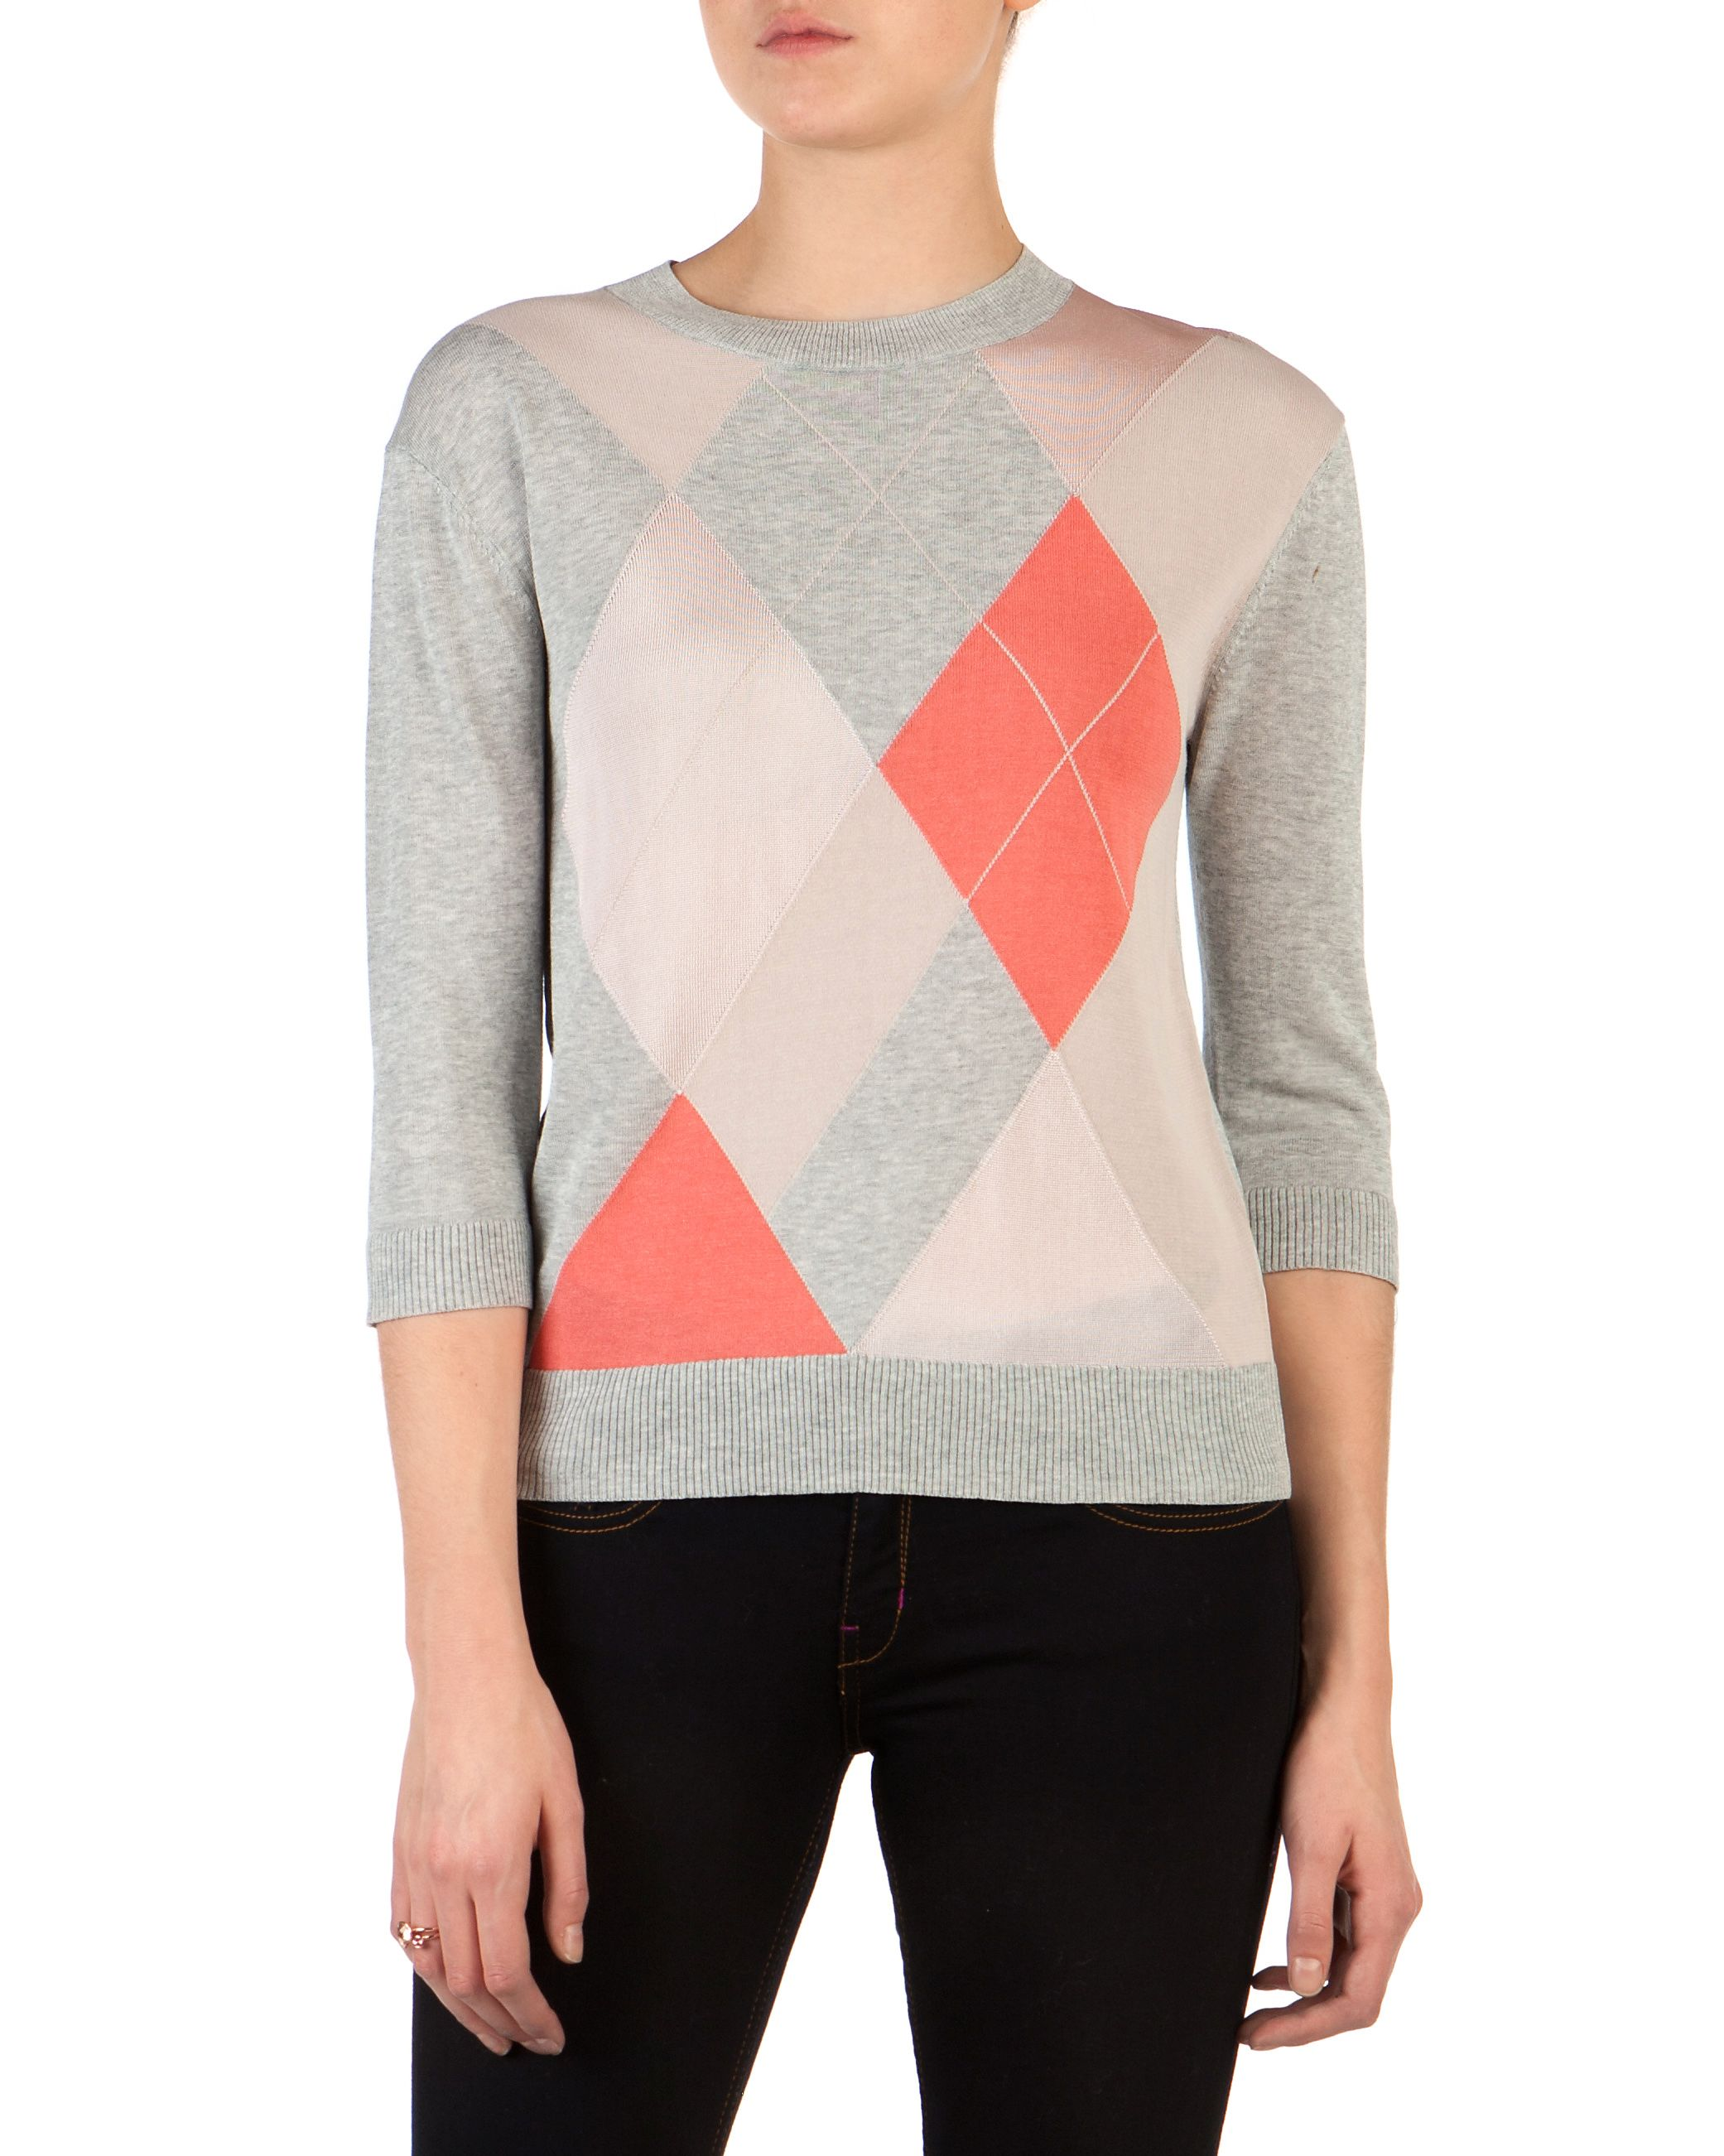 Hathor argyle jumper